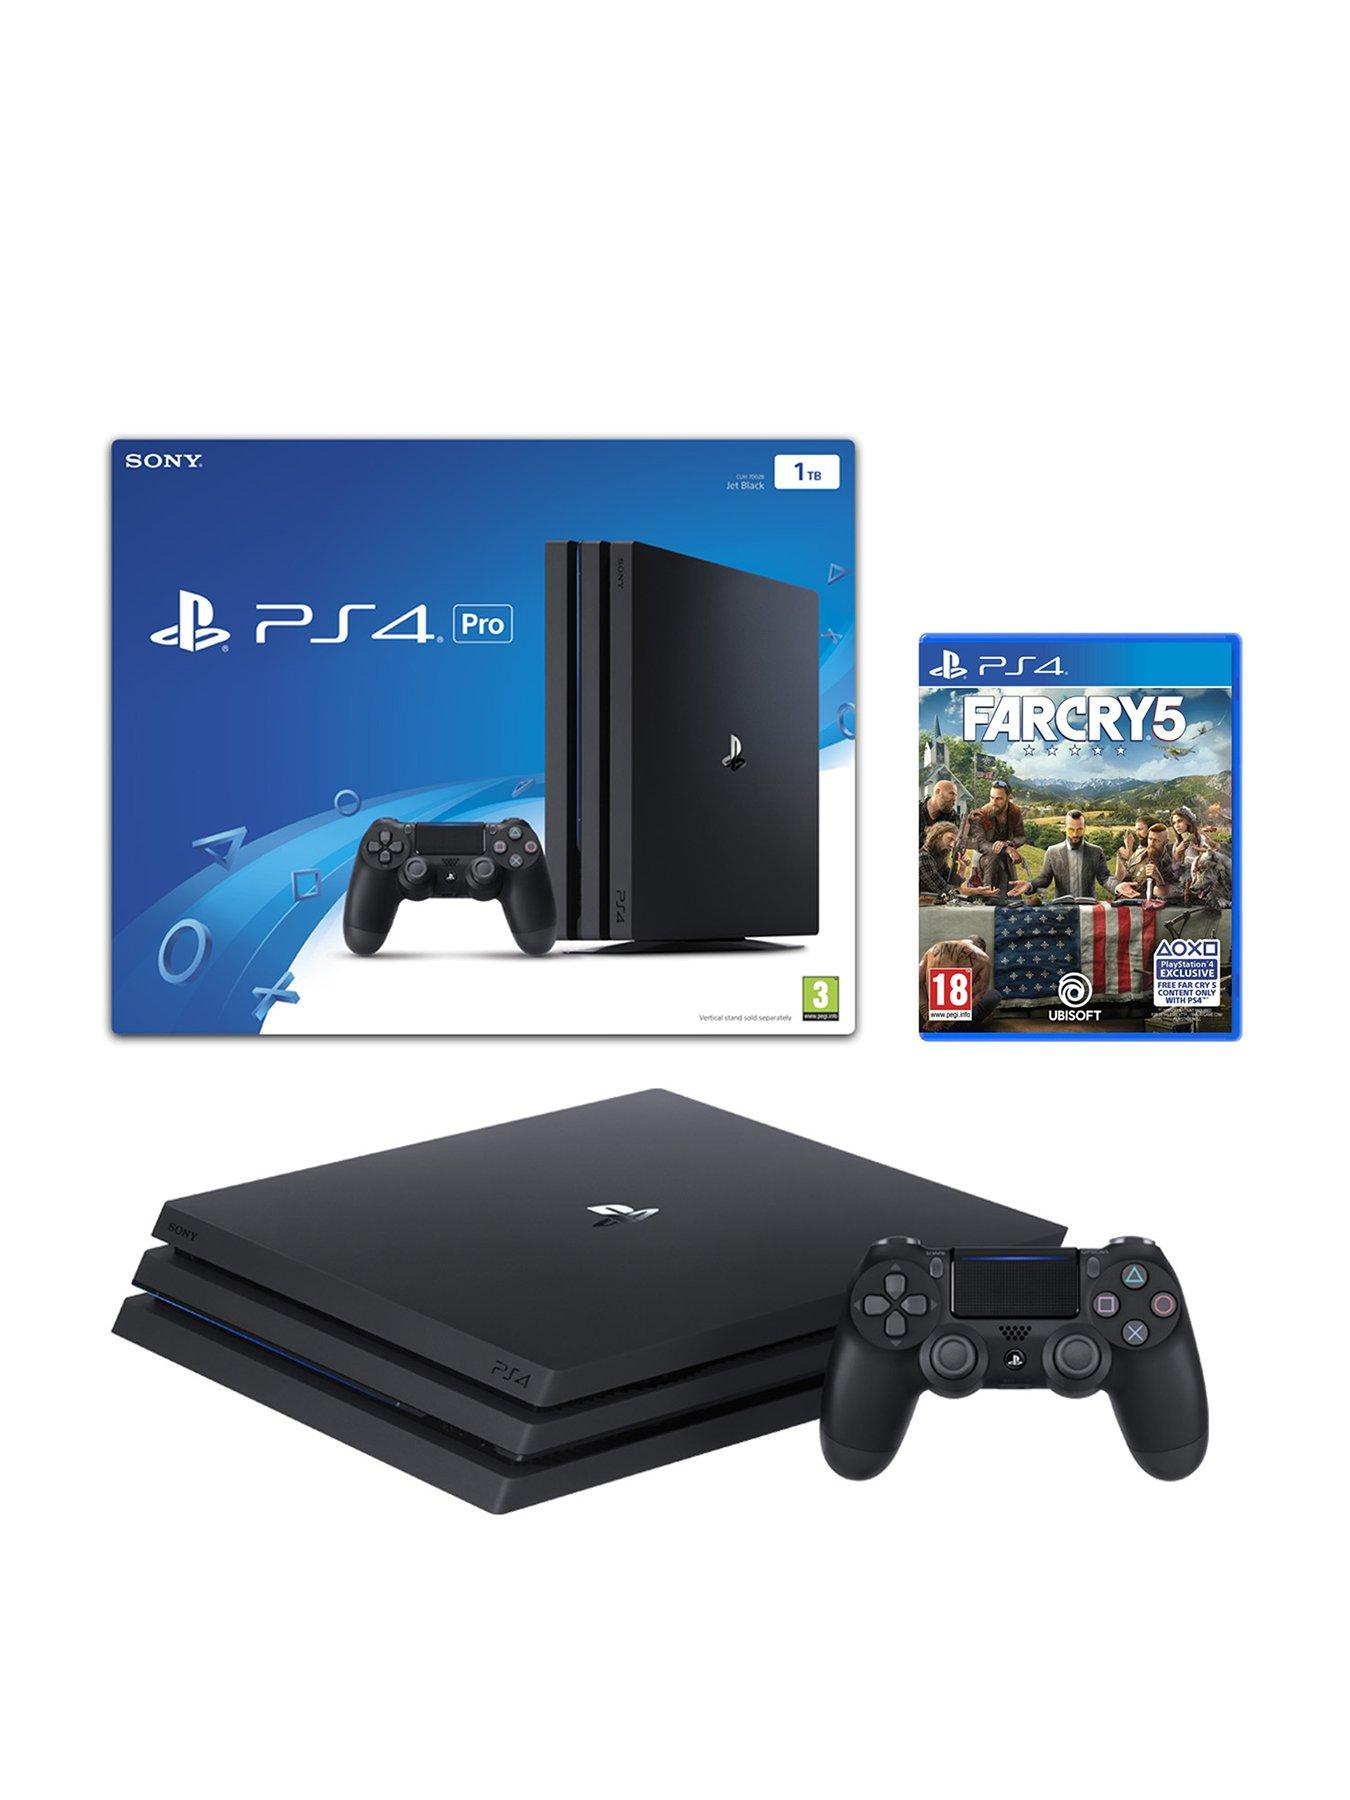 PlayStation 4 Consoles | PS4 | Littlewoods.com